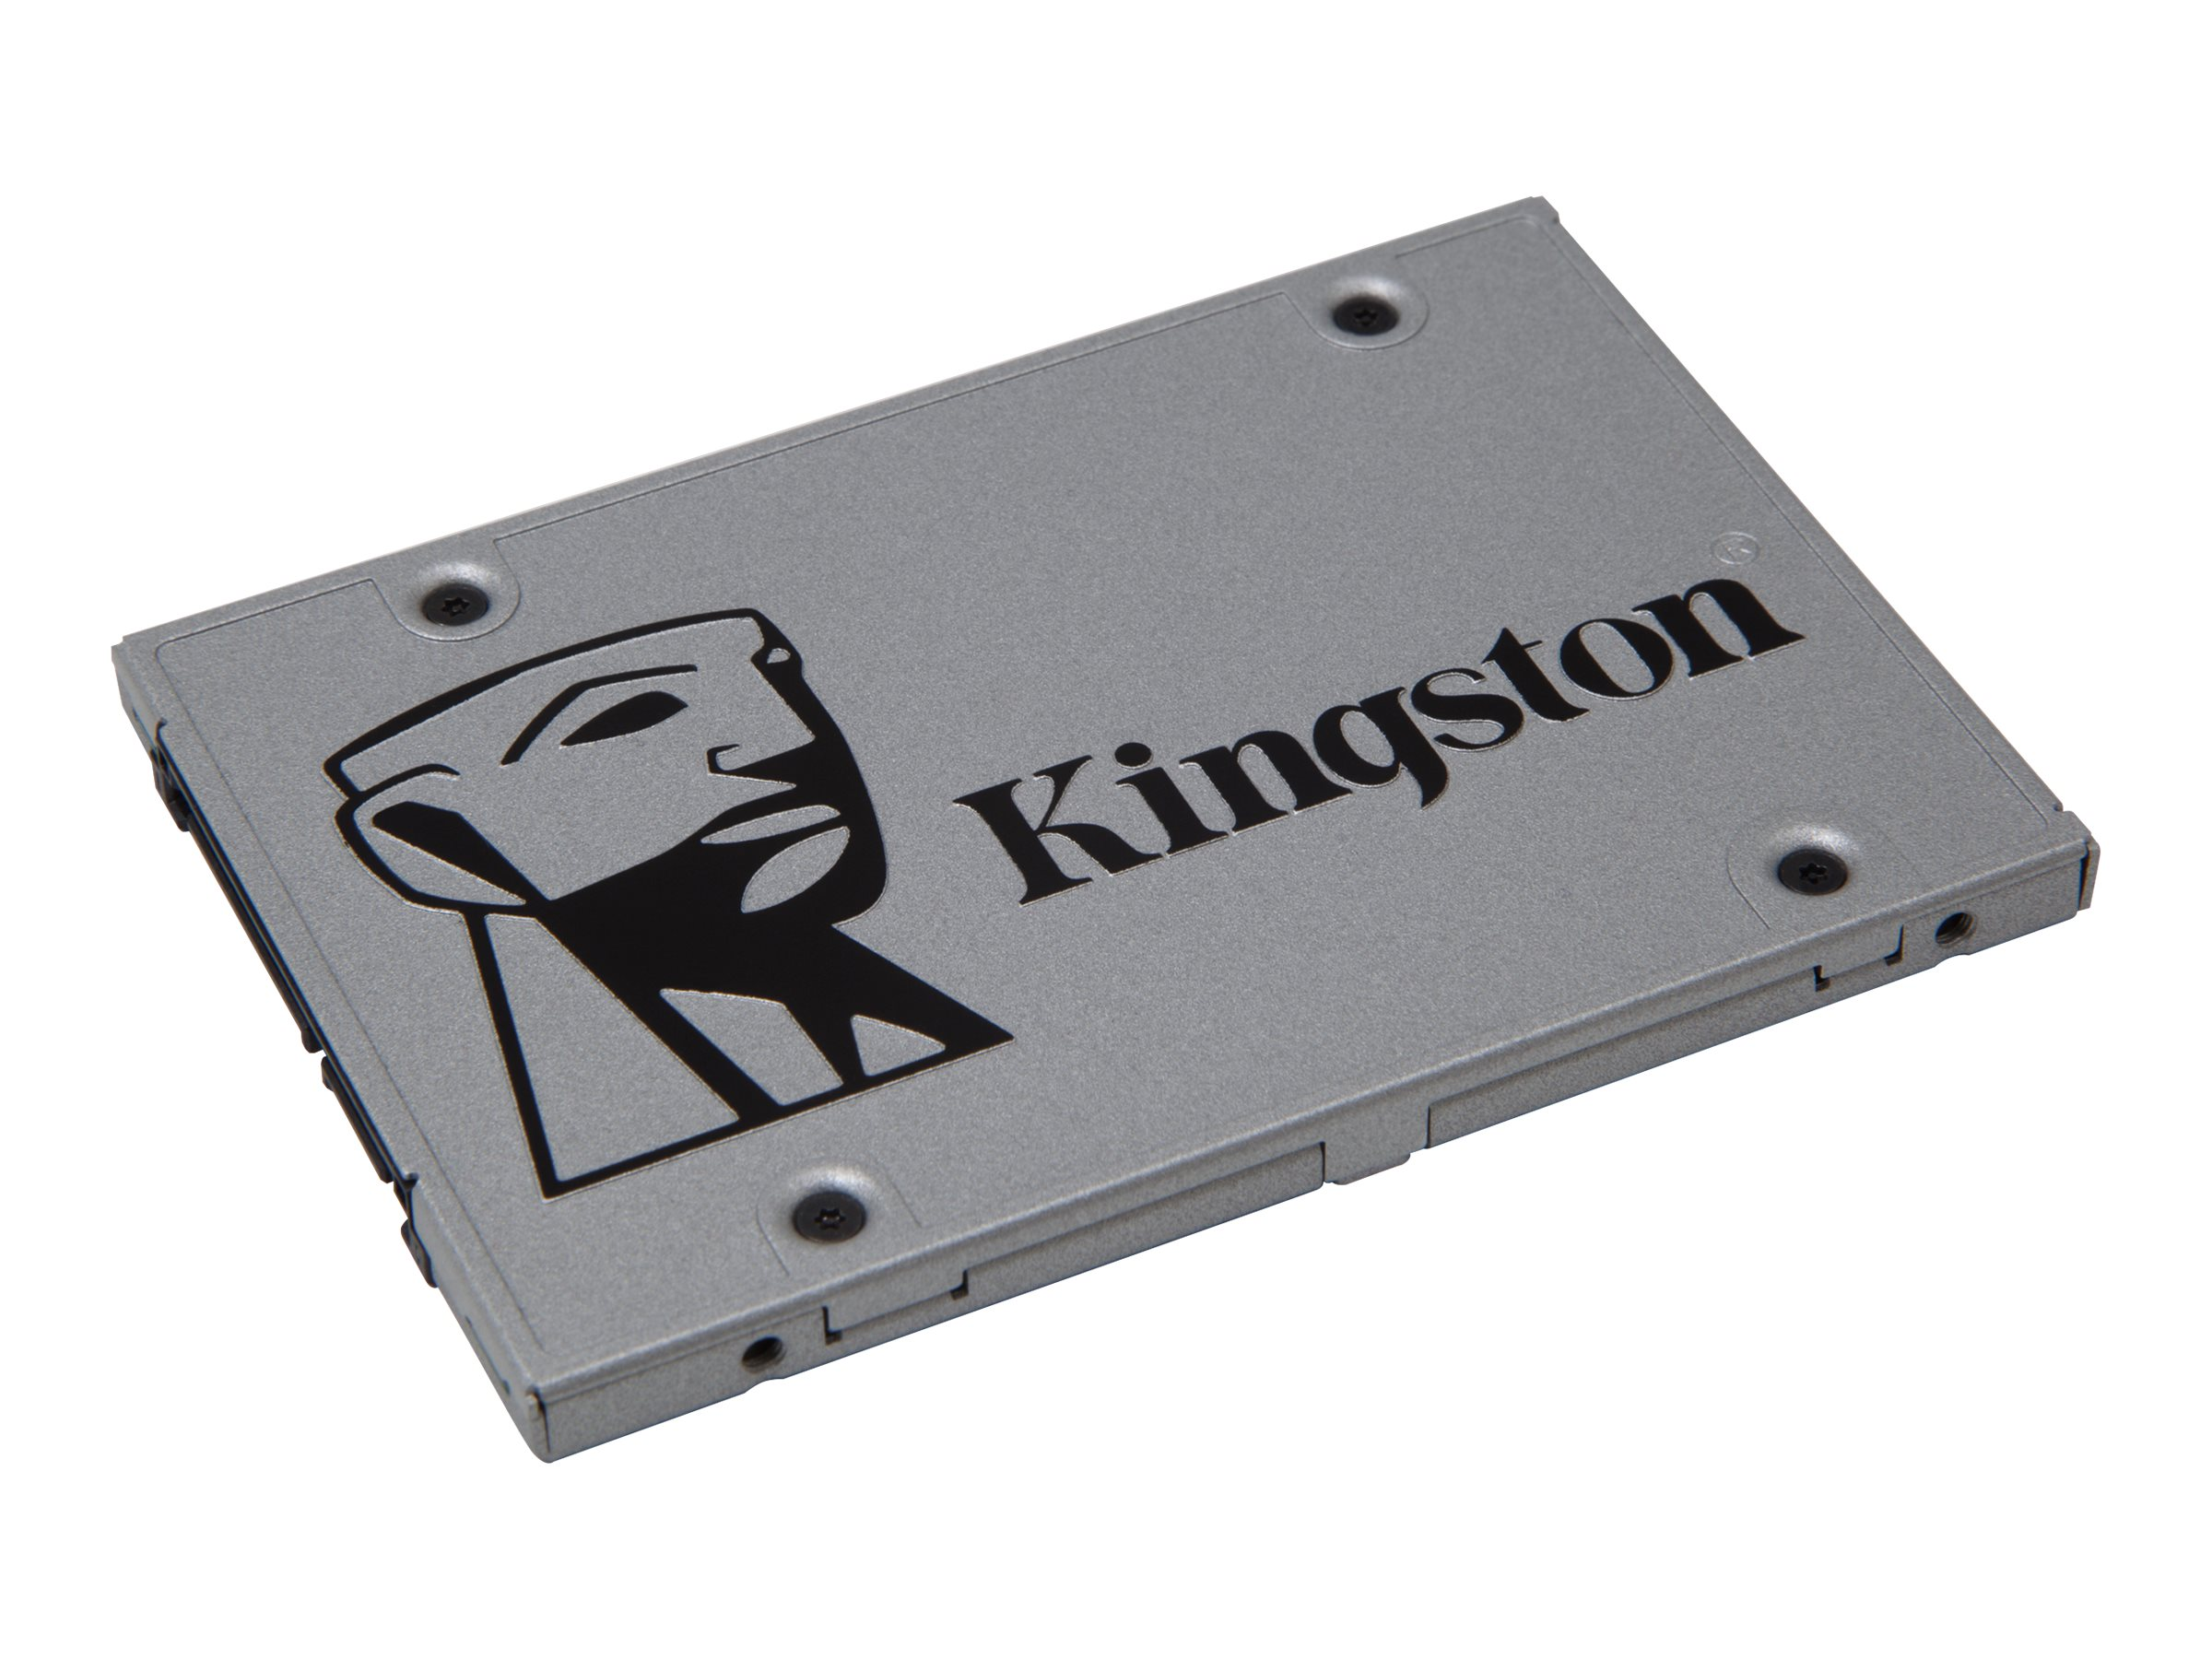 Kingston 120GB UV400 SATA 6Gb s 2.5 Internal Solid State Drive